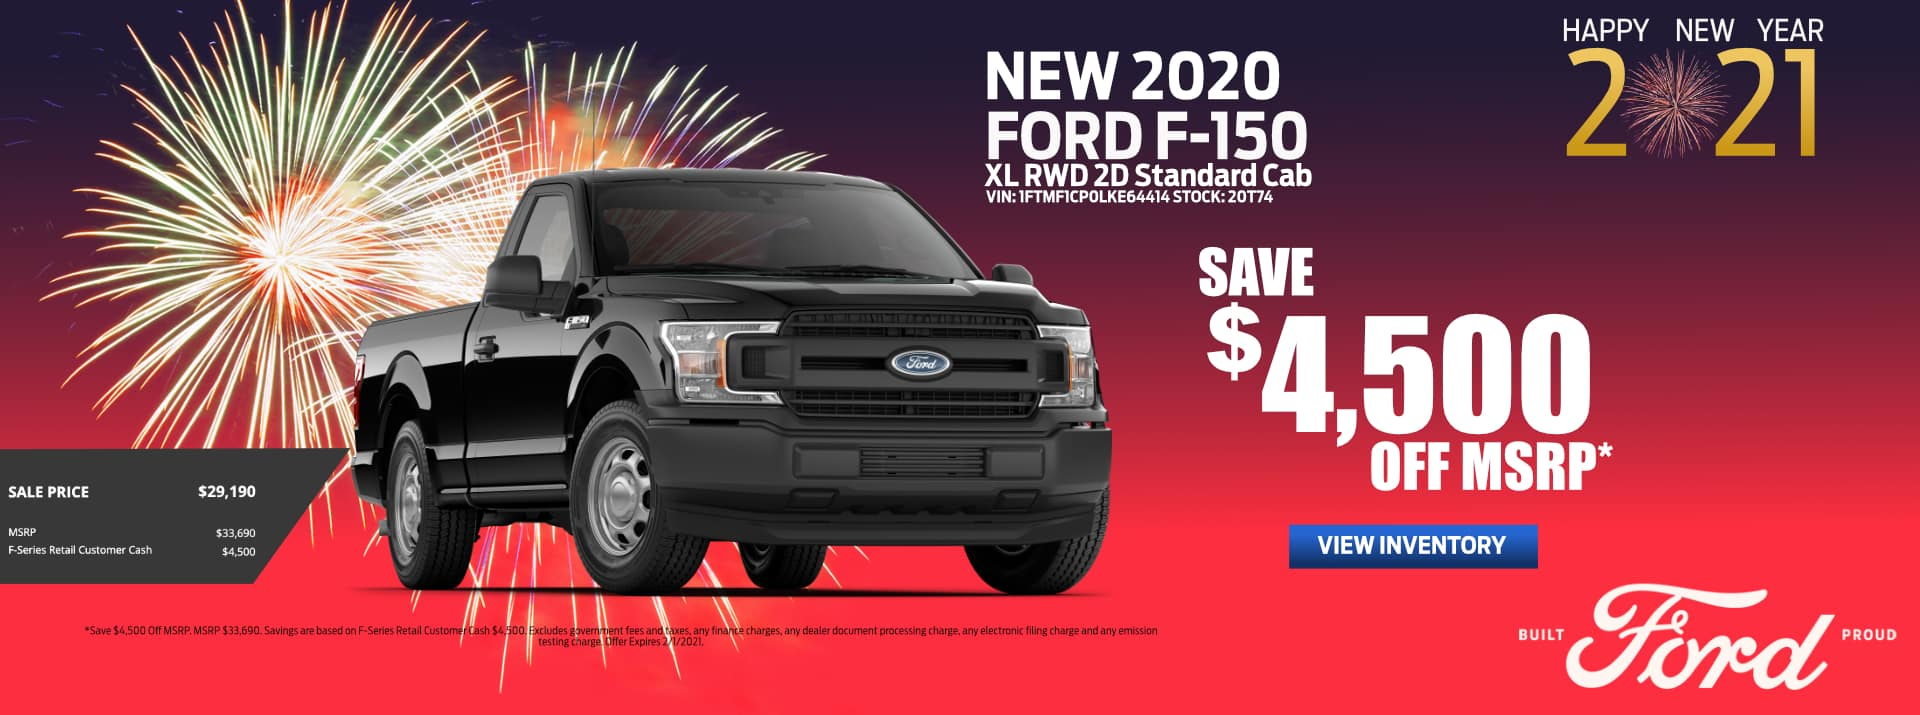 Revised_January-2021 Ford F-150 PSM